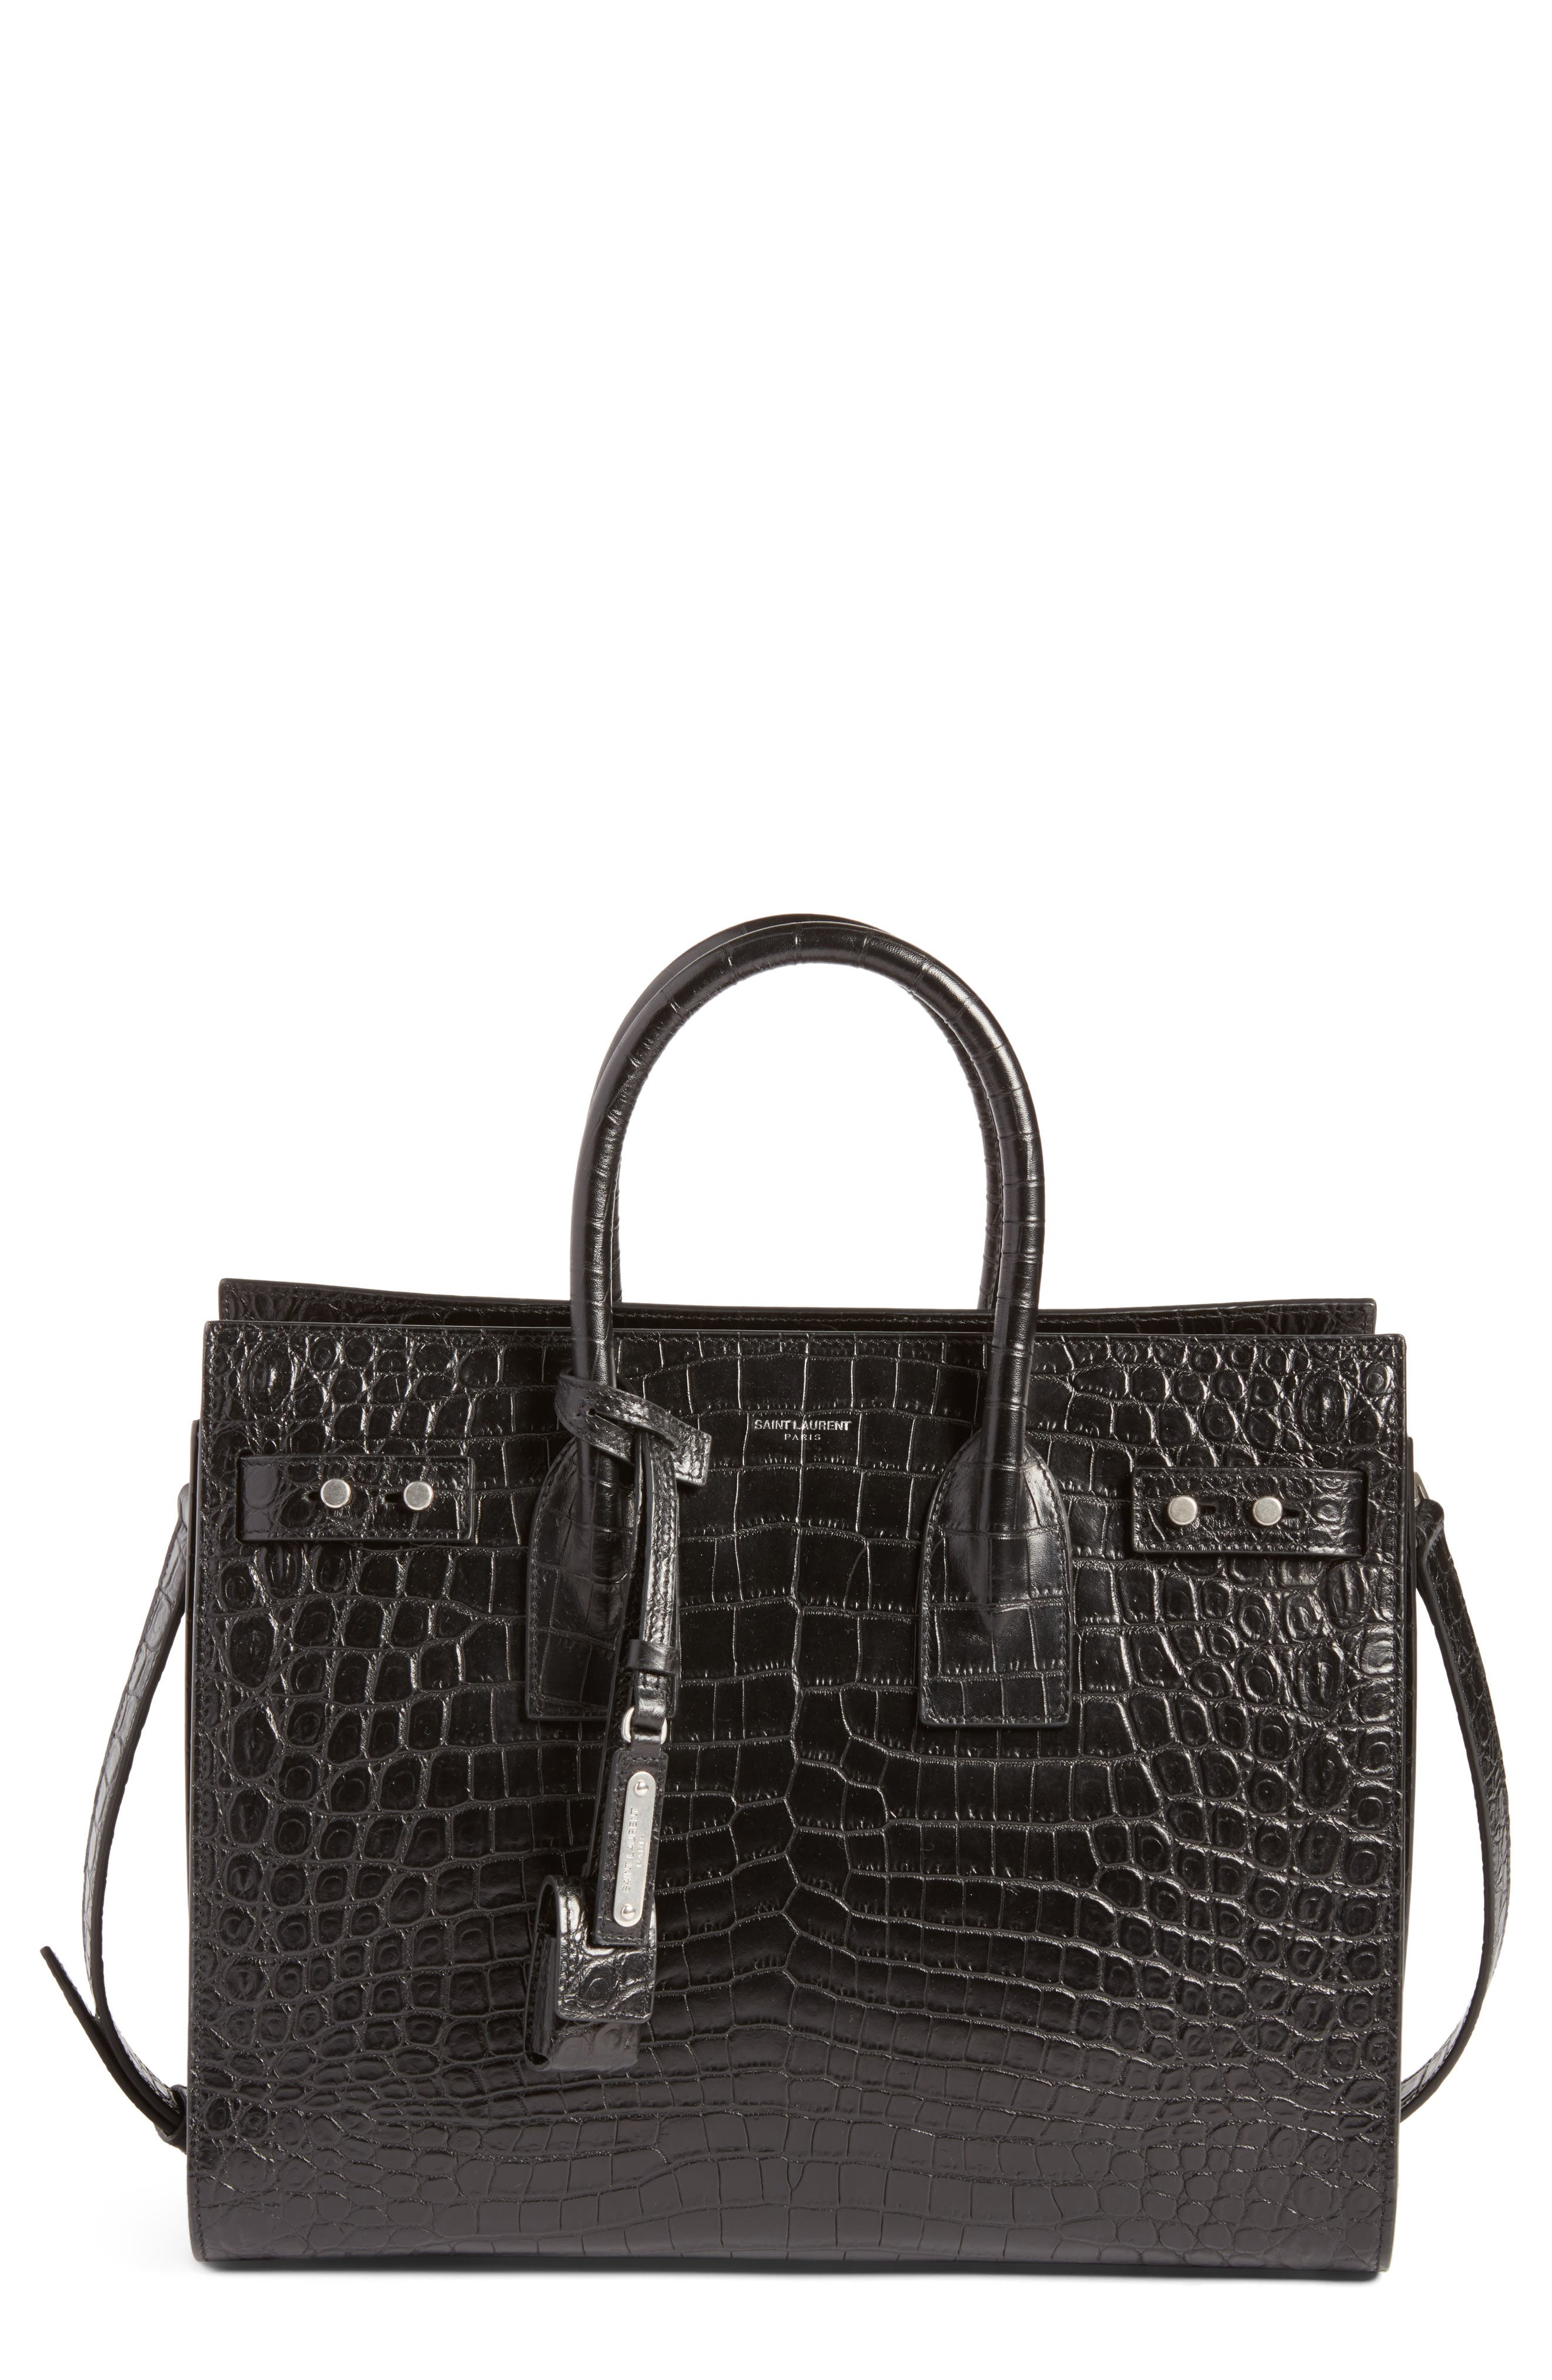 Saint Laurent Small Sac de Jour Embossed Calfskin Satchel